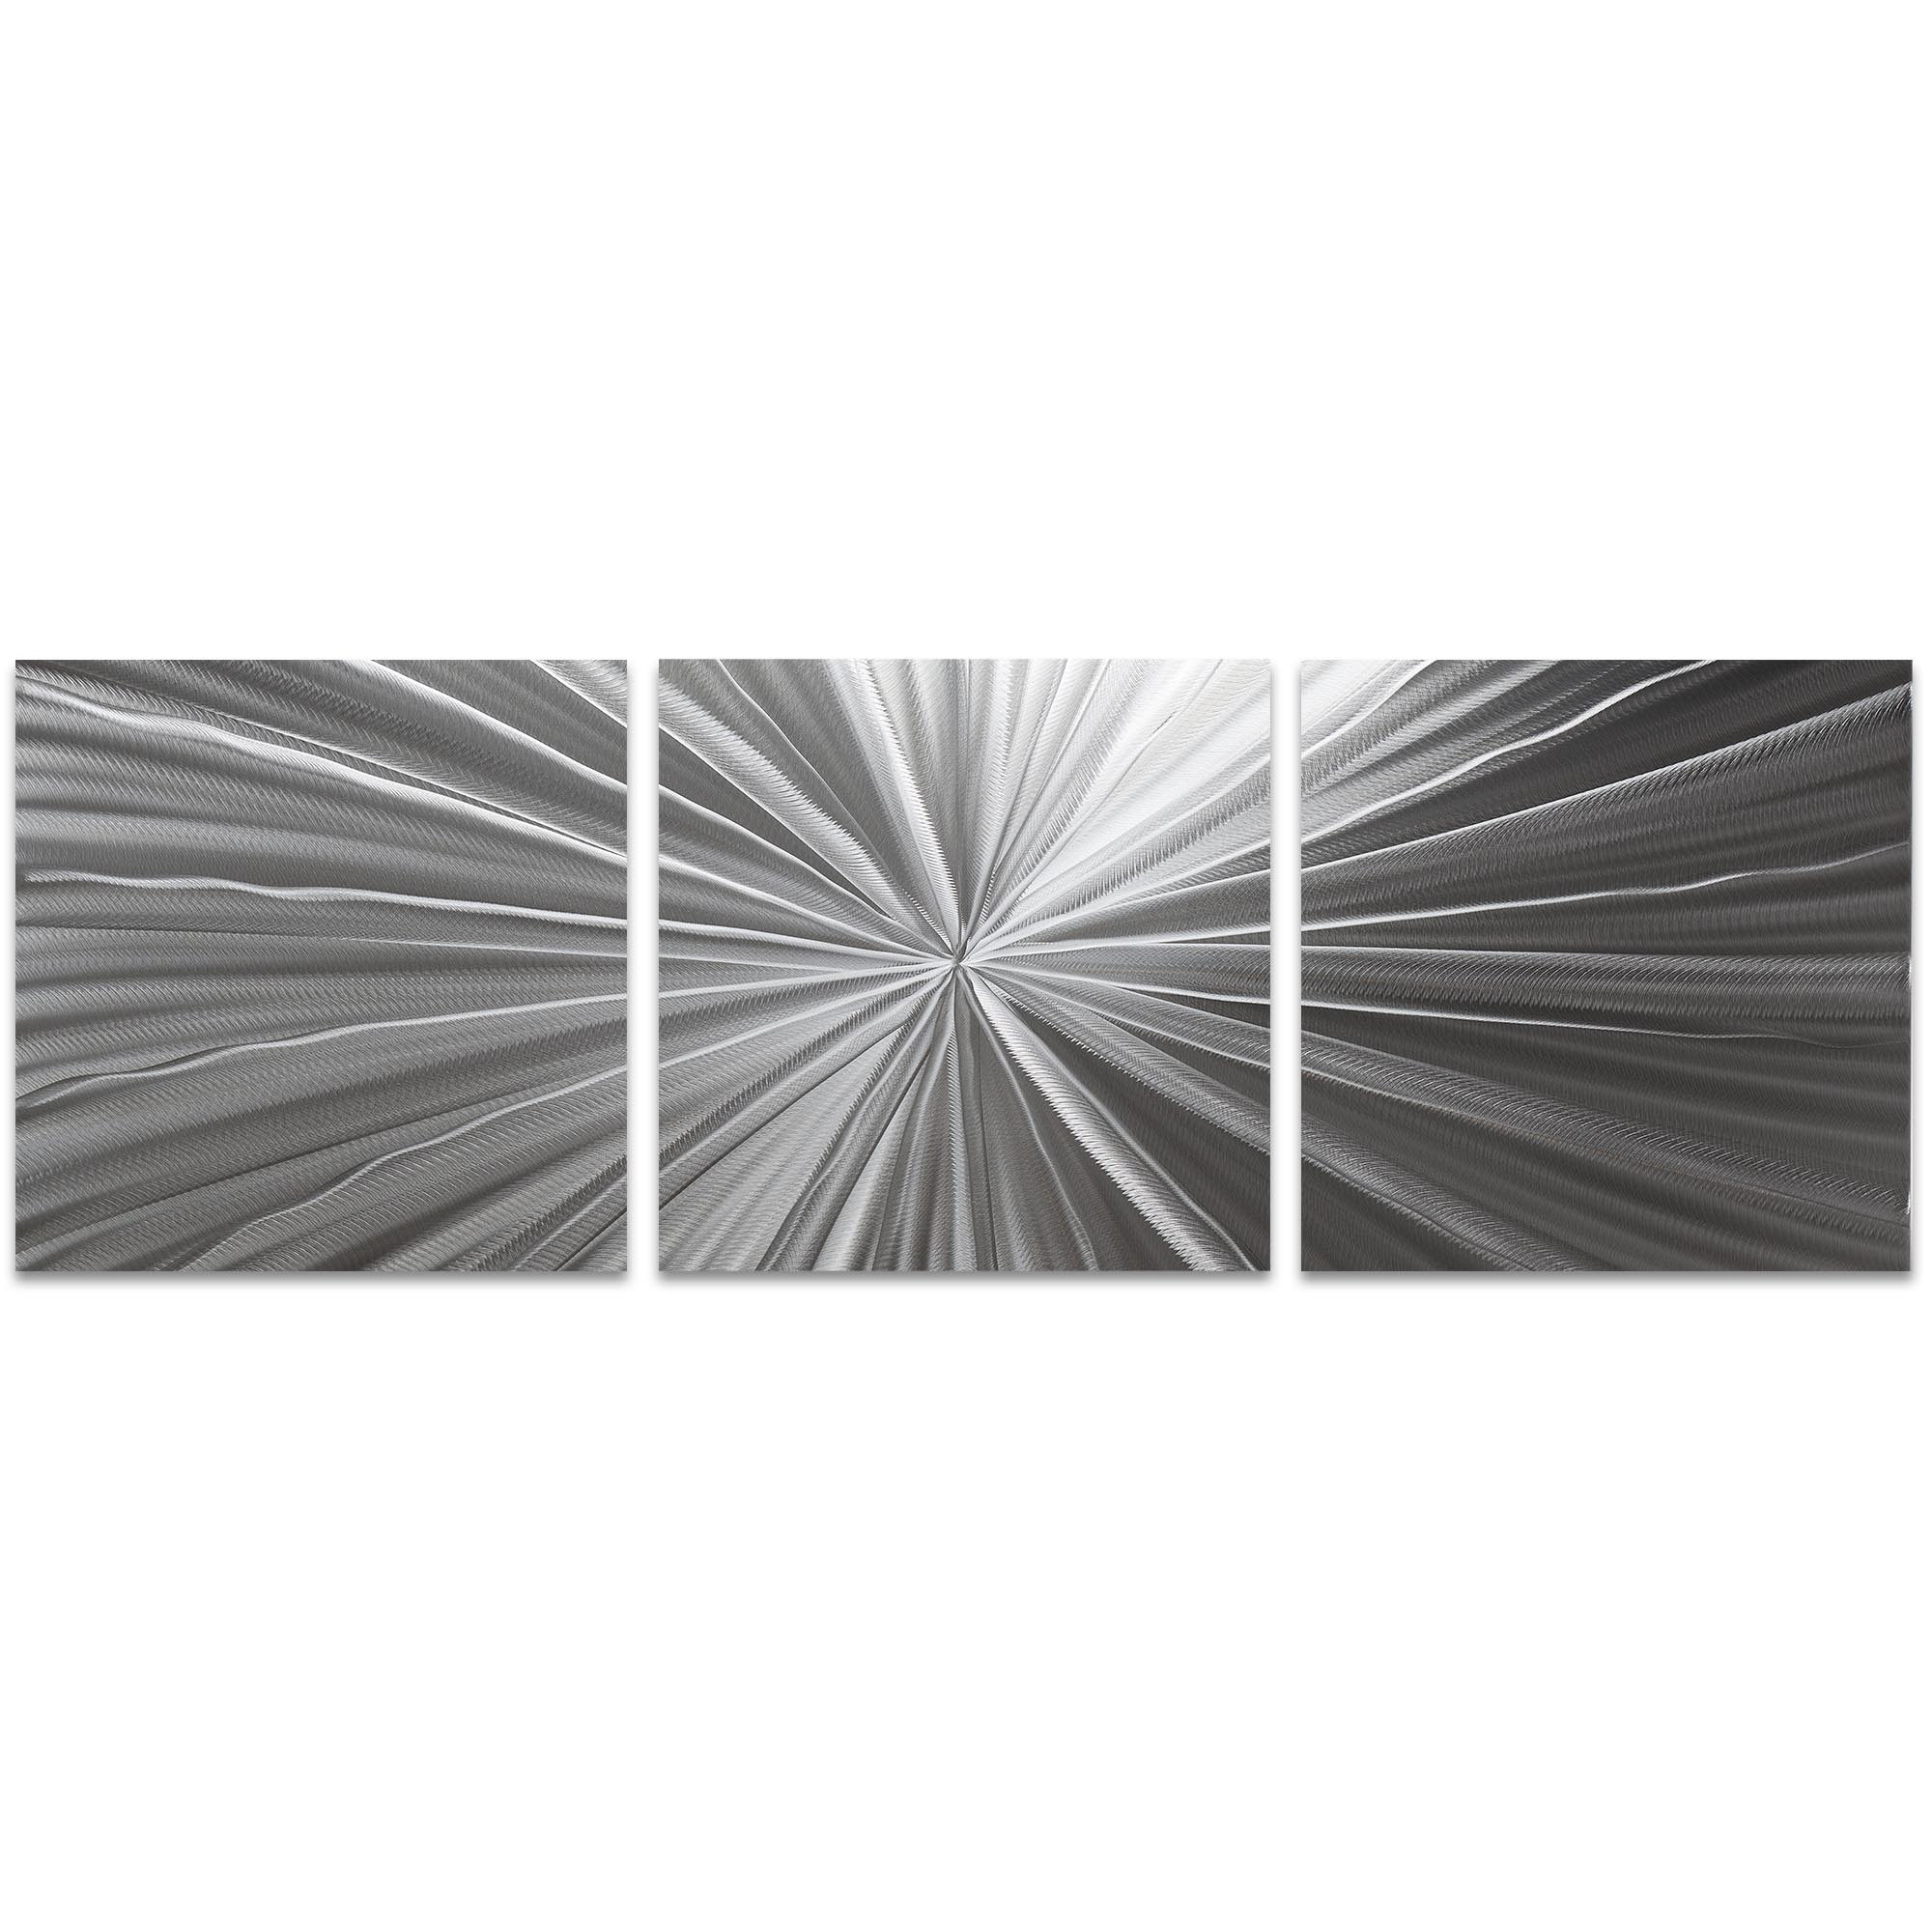 Tantalum Triptych Large 70x22in. Metal or Acrylic Contemporary Decor